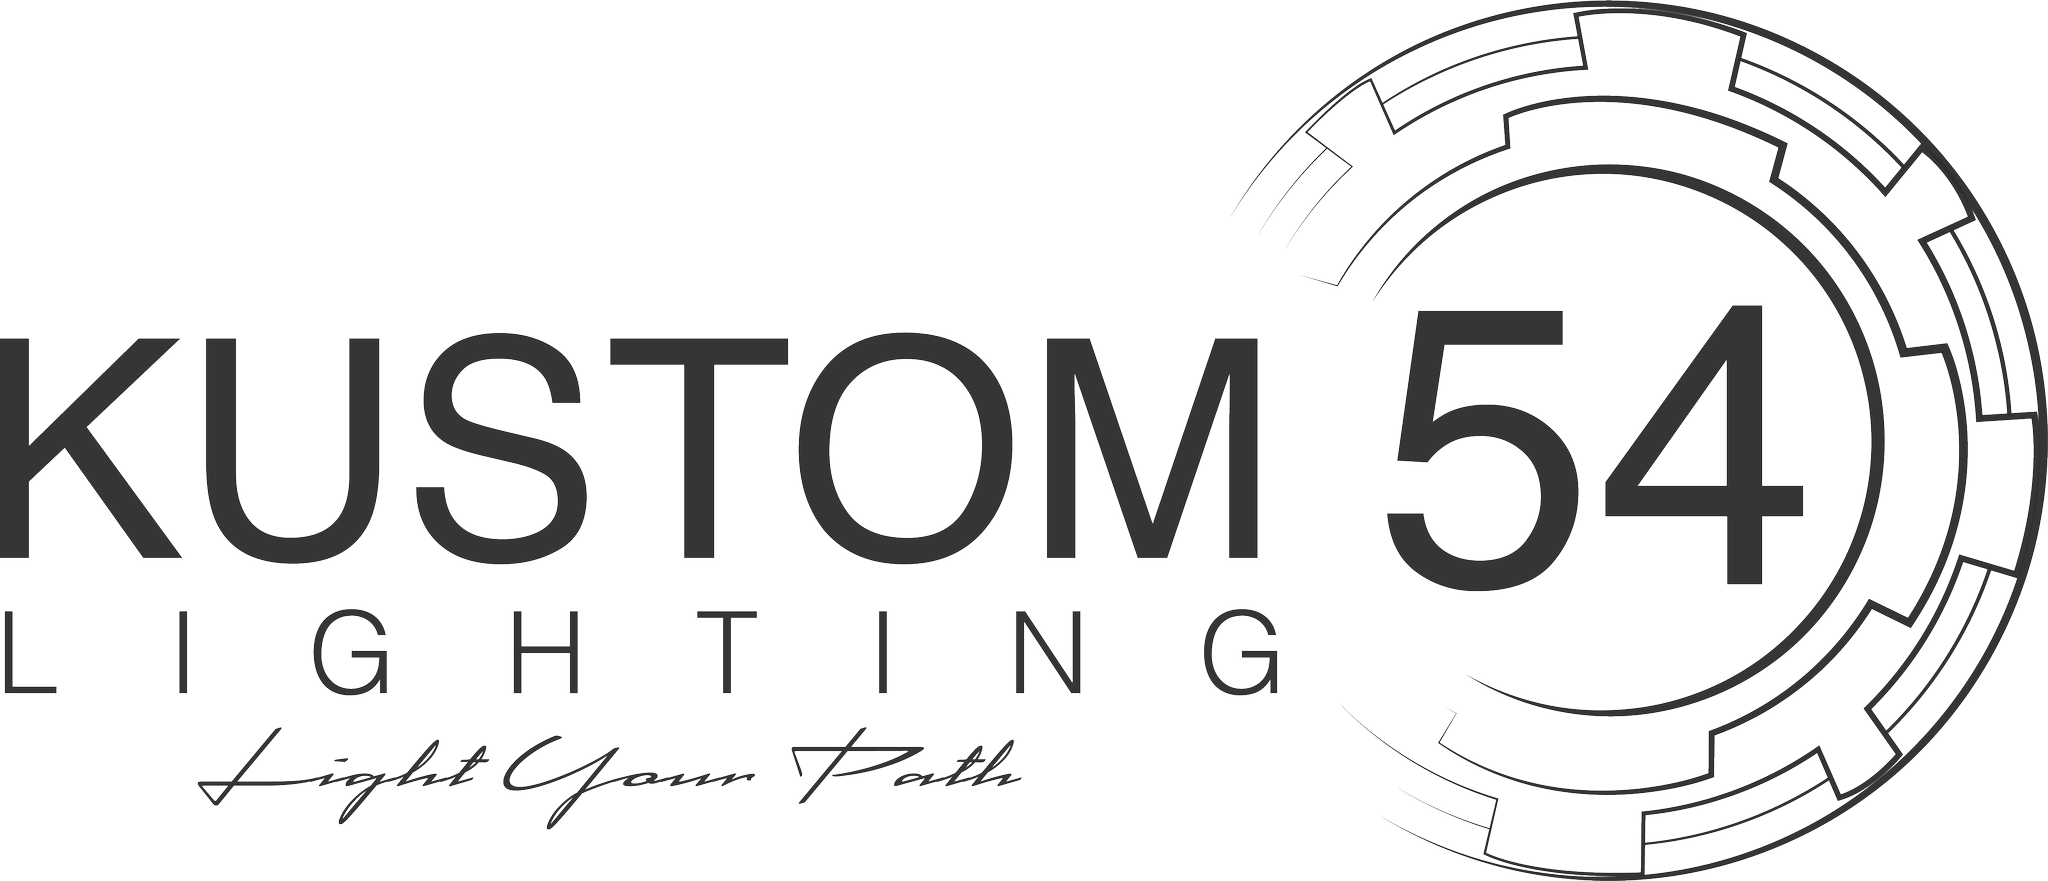 Kustom 54 Lighting LLC